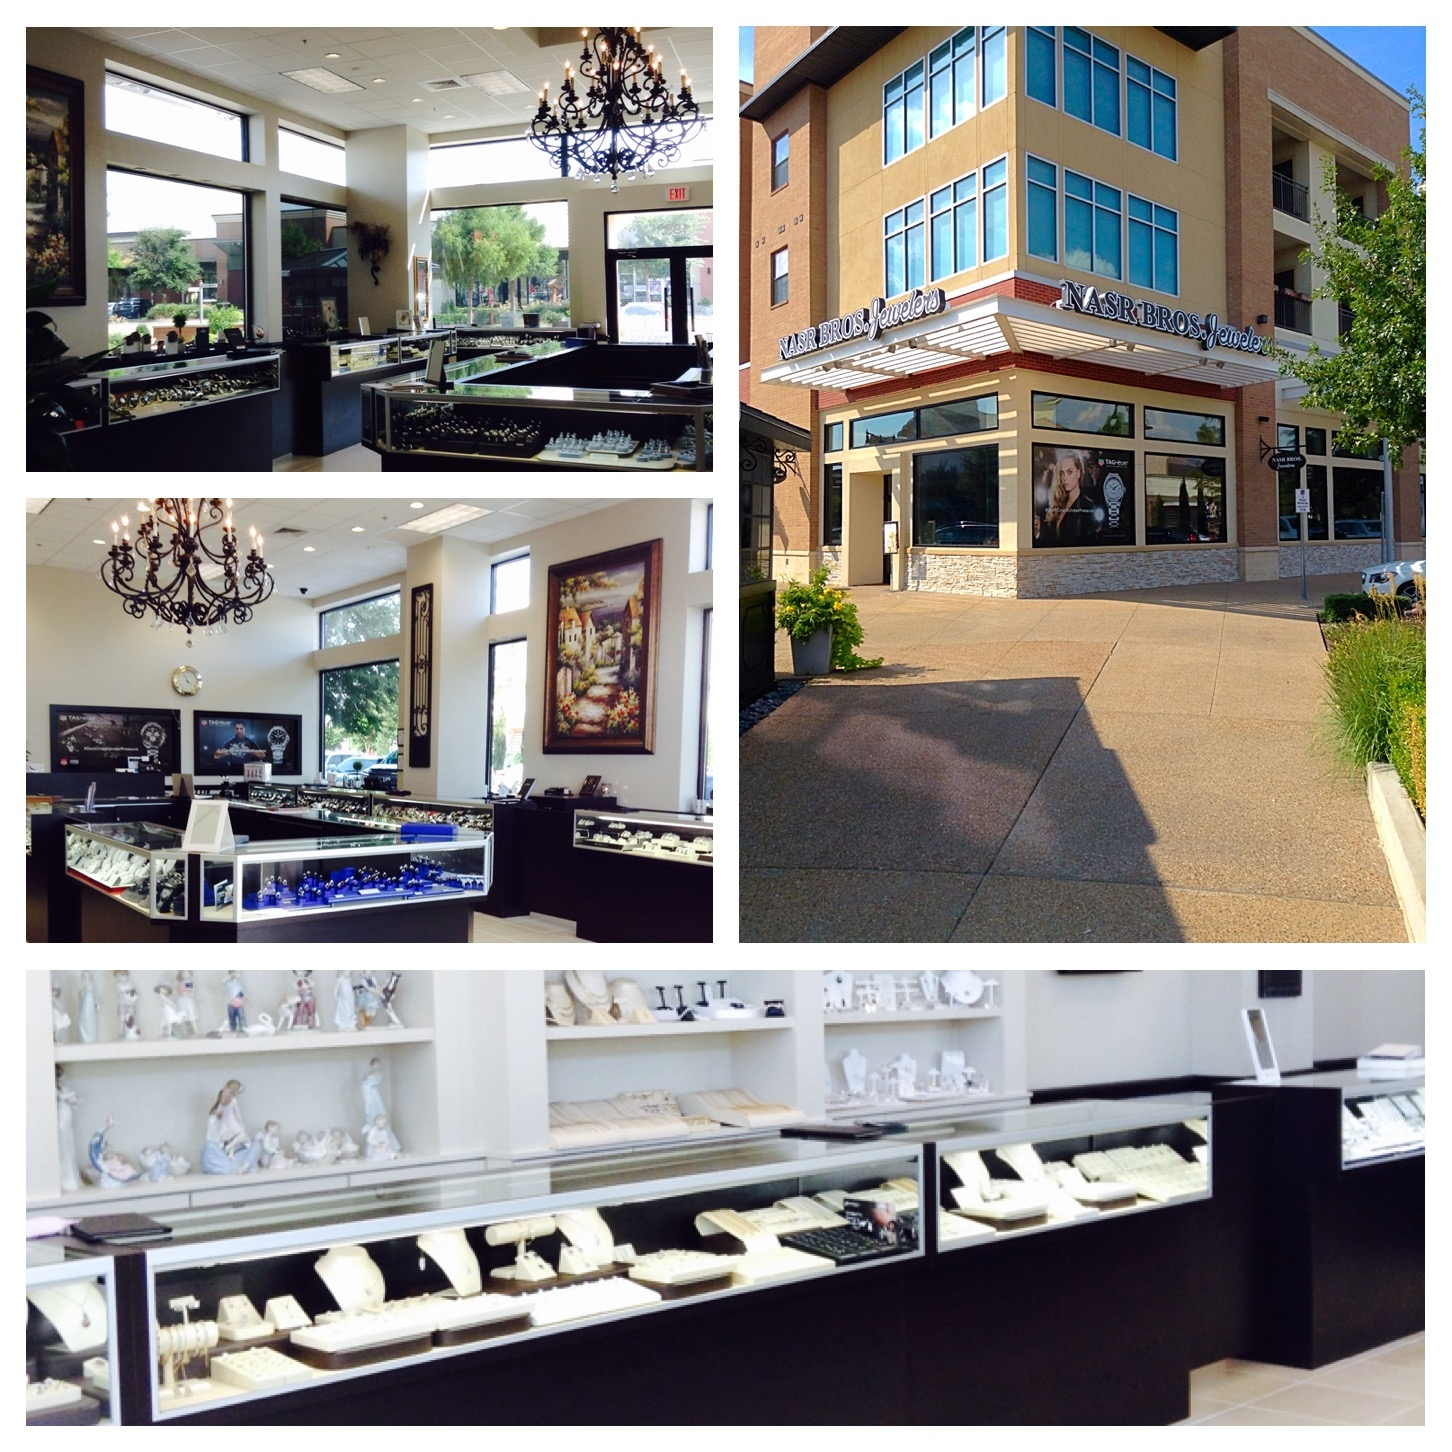 Nasr bros jewelers in fairview tx 75069 for Jewelry stores in texas